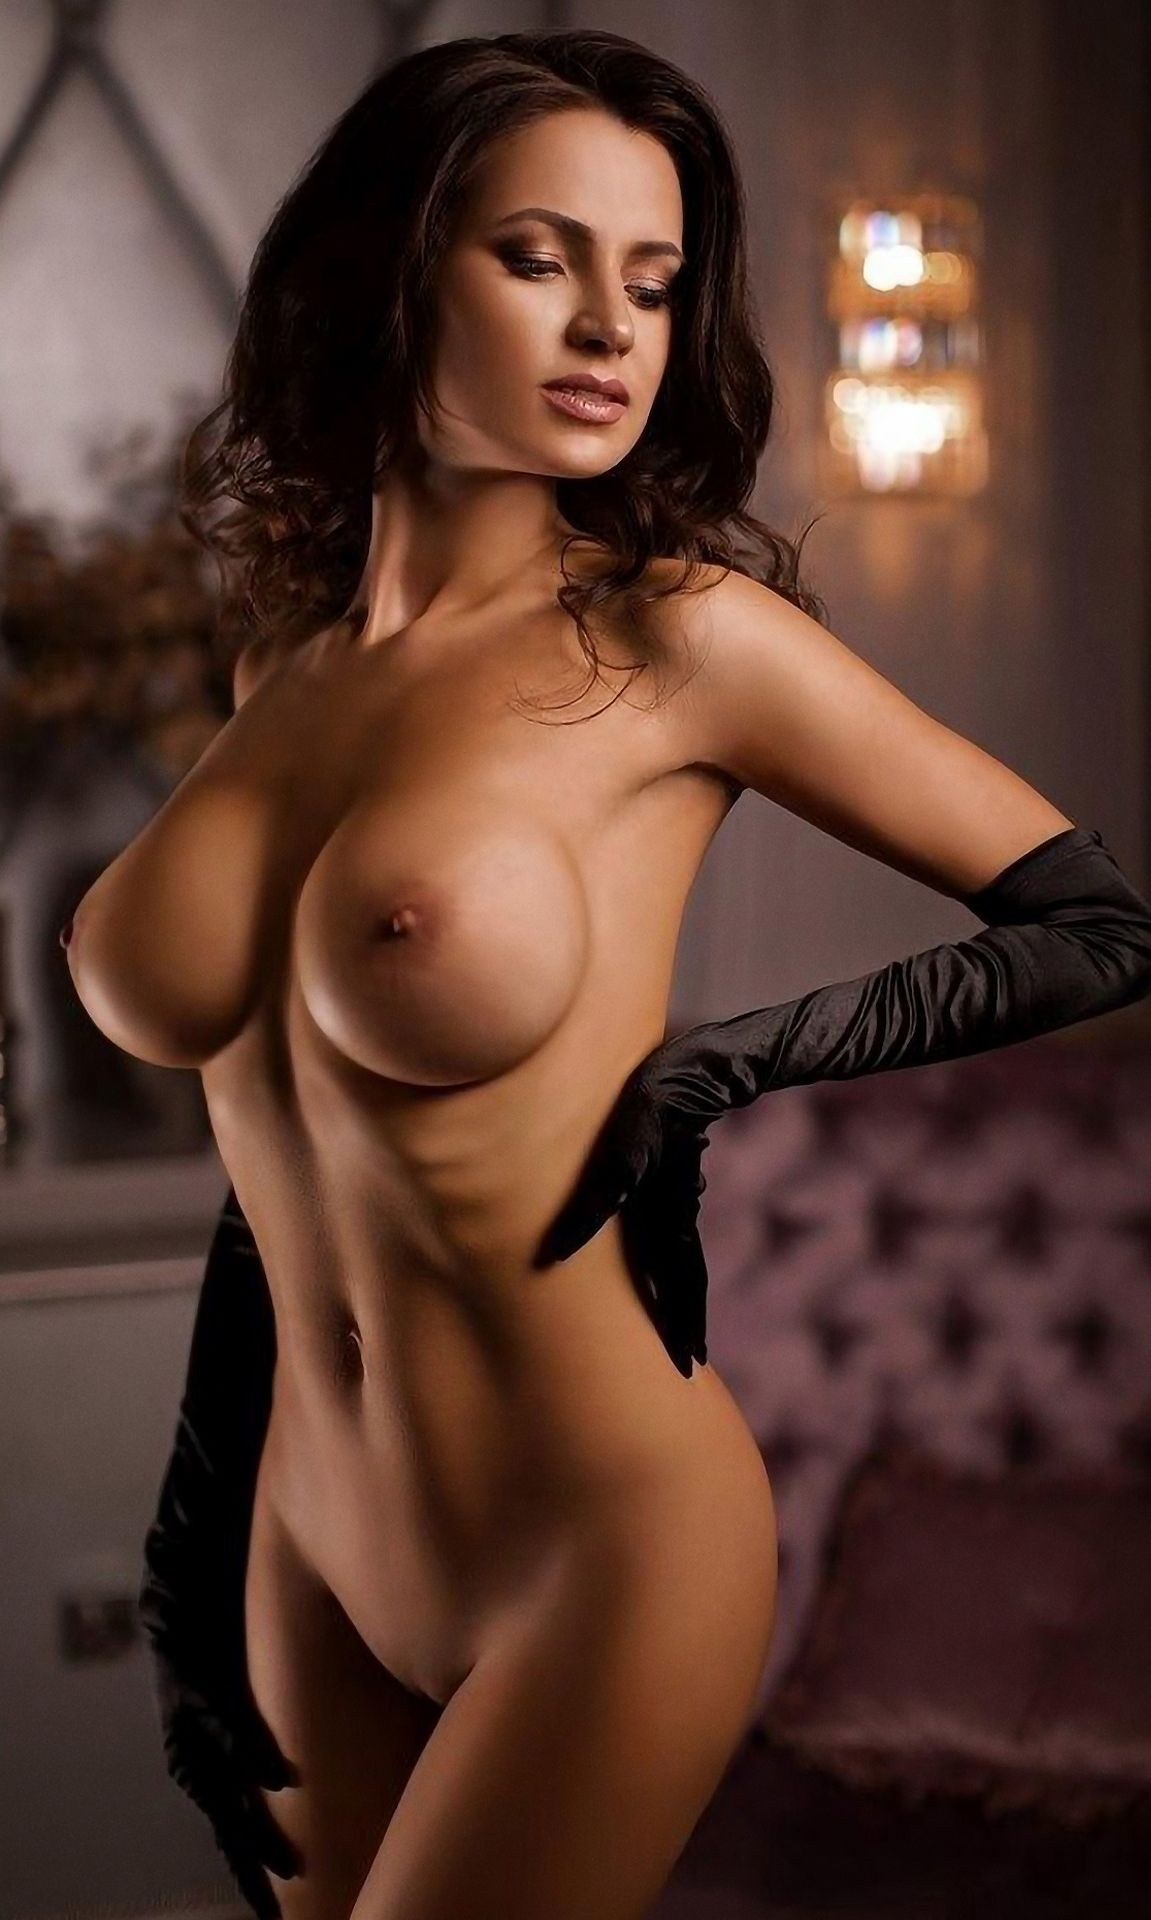 Nice Breasts